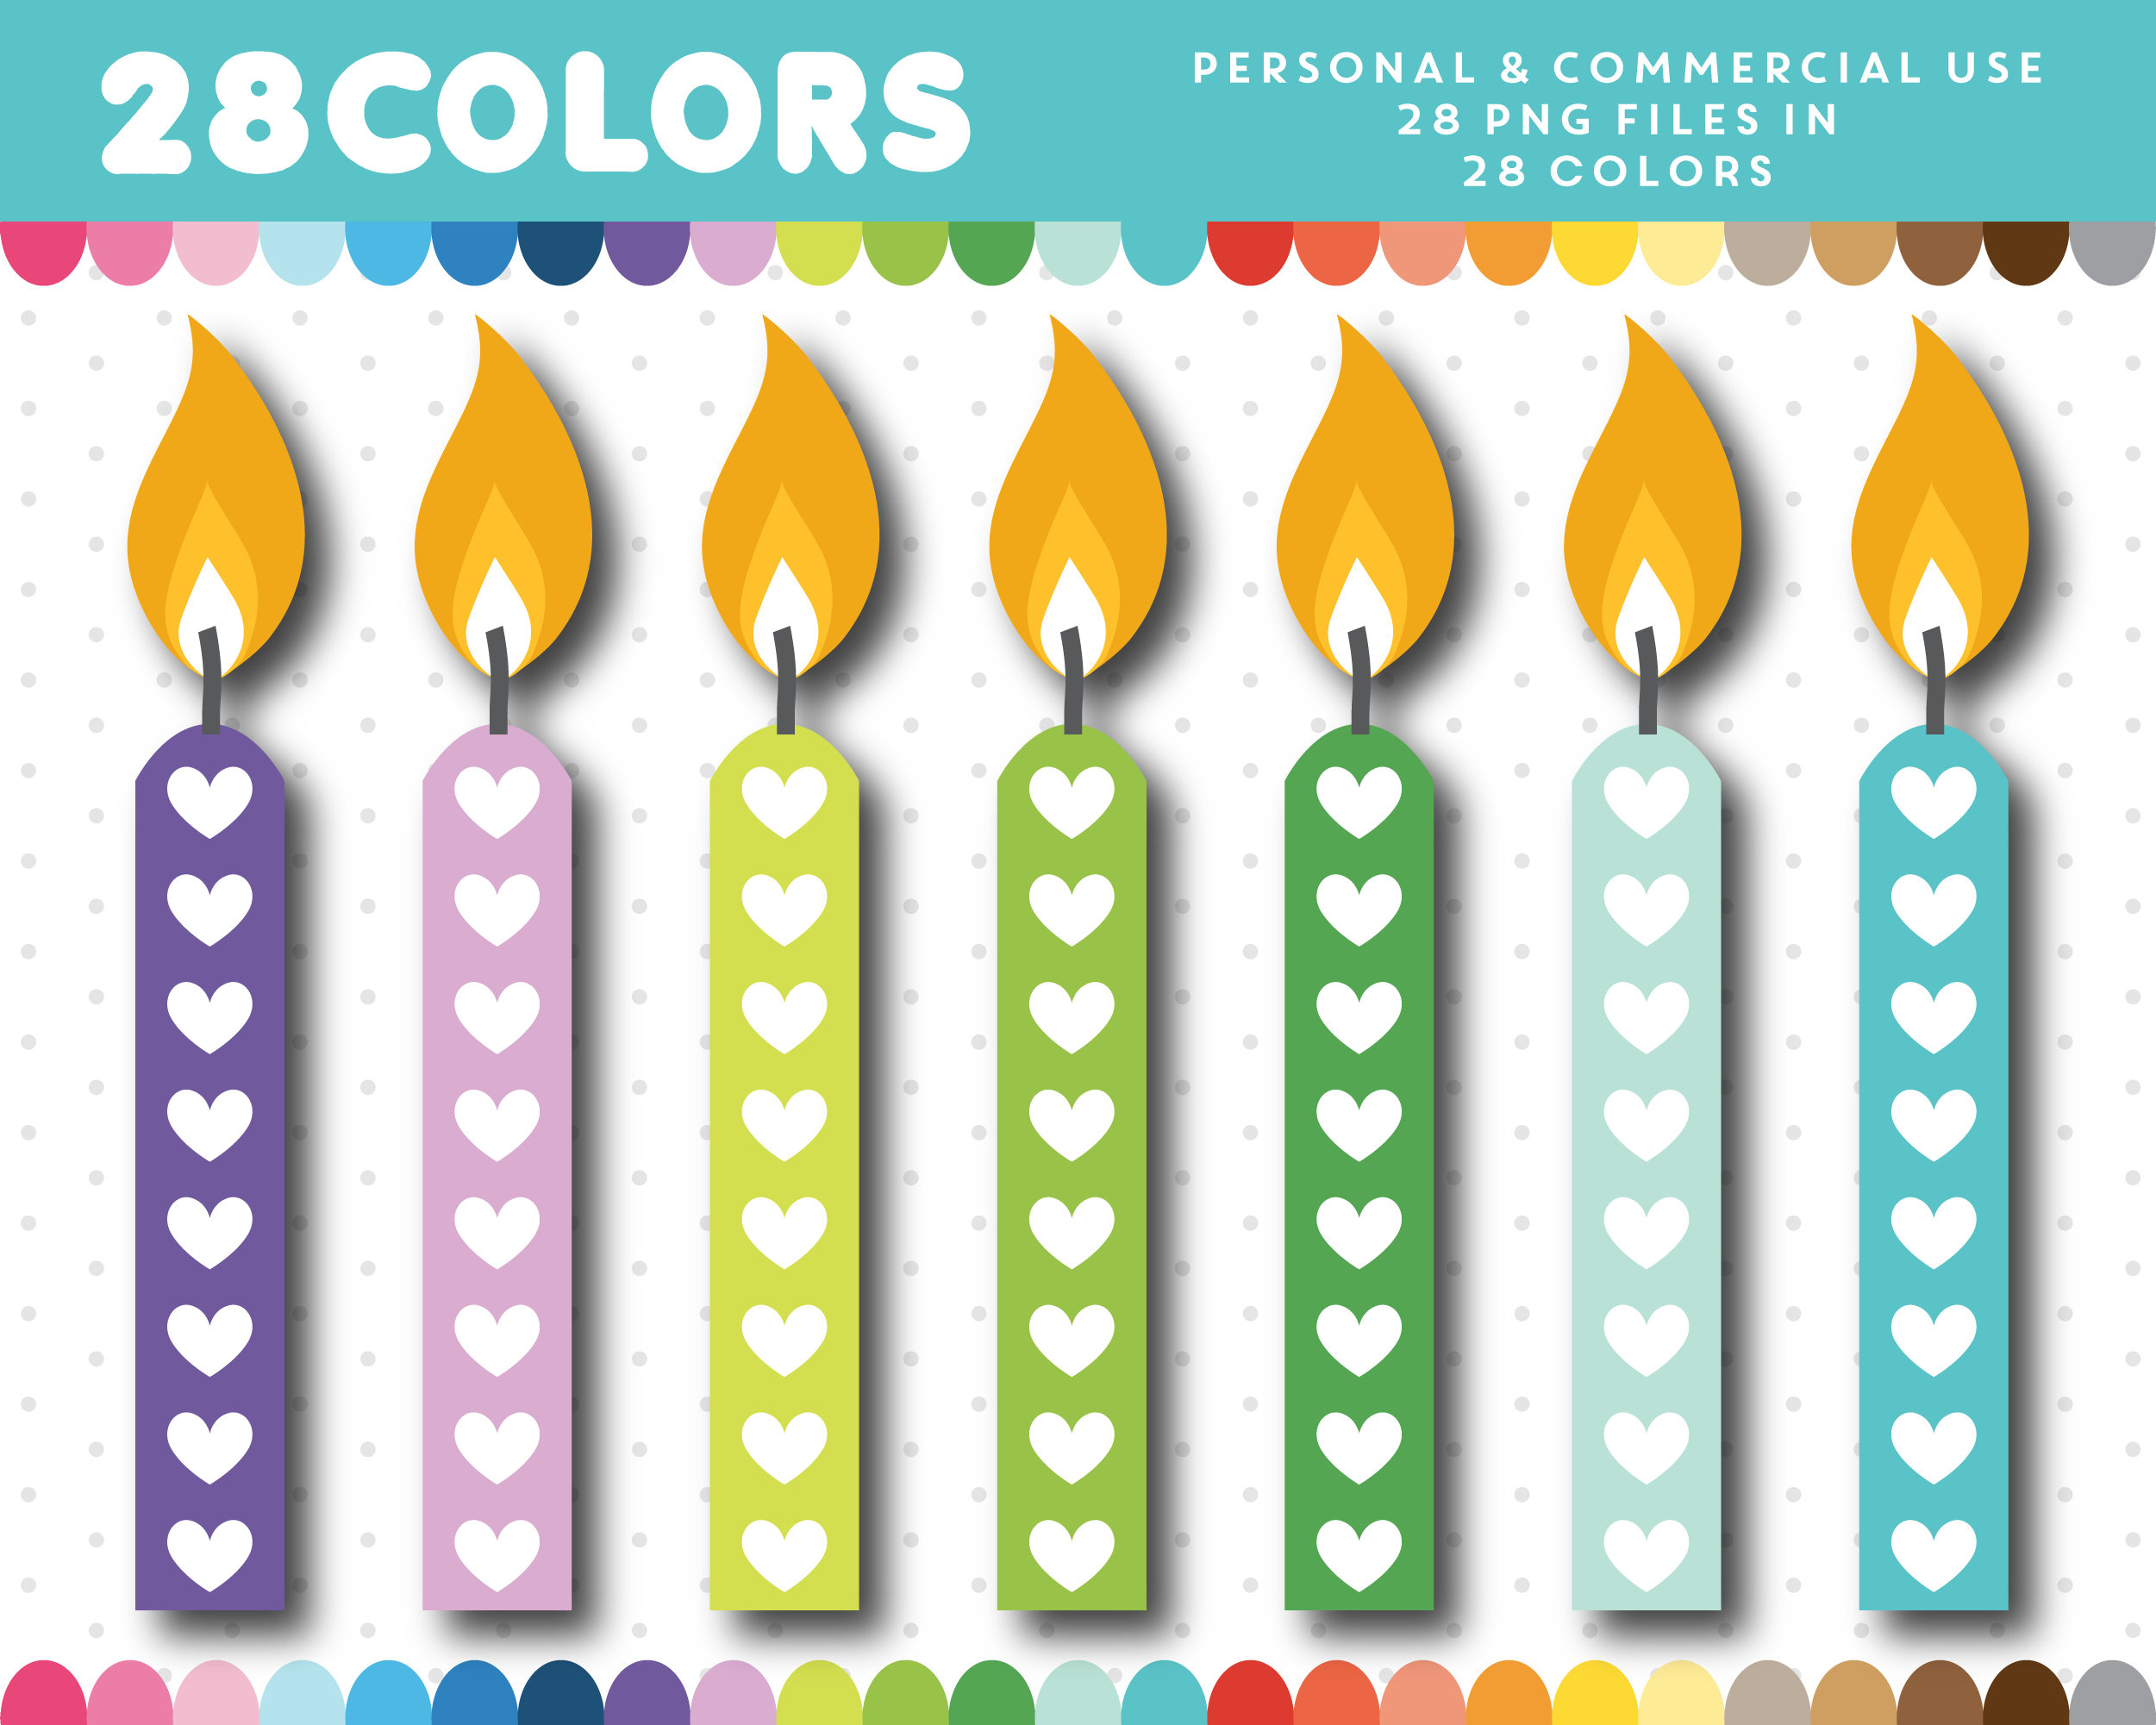 candle clip art birthday candle clipart birthday cake clipart rh etsystudio com birthday candle clipart animated birthday candle clipart images free